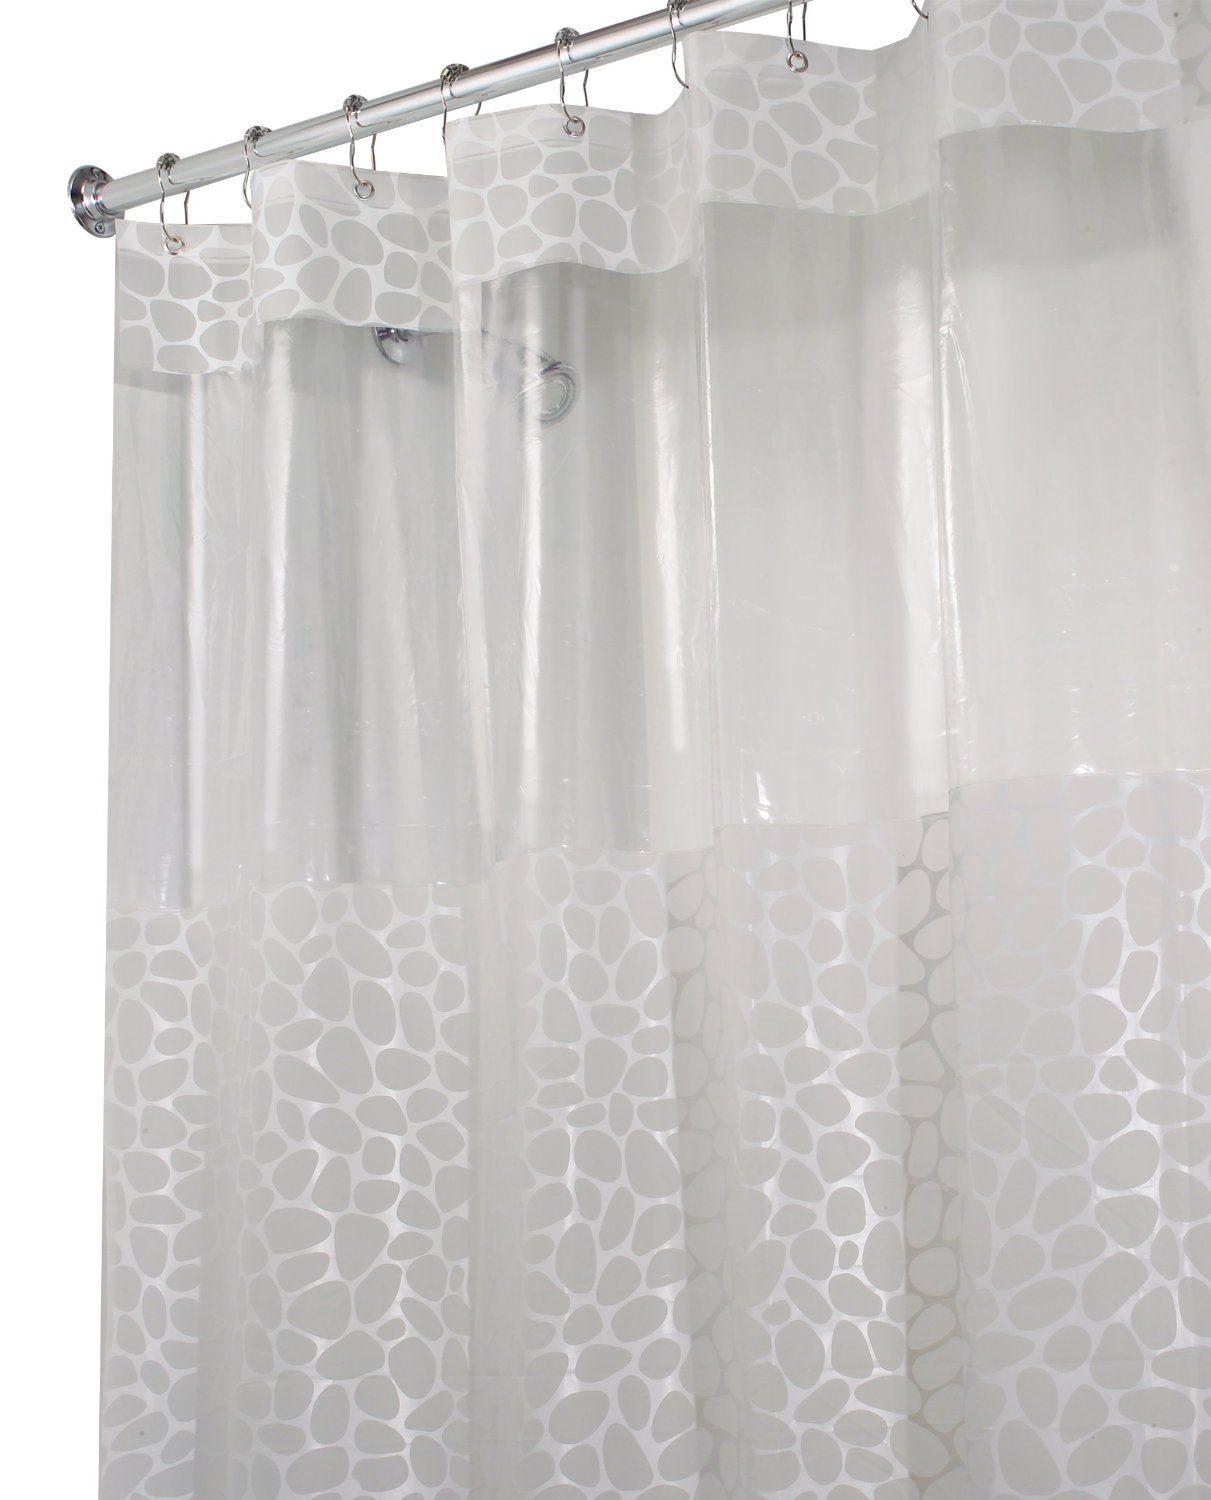 What Is Eva Material Shower Curtain | www.redglobalmx.org